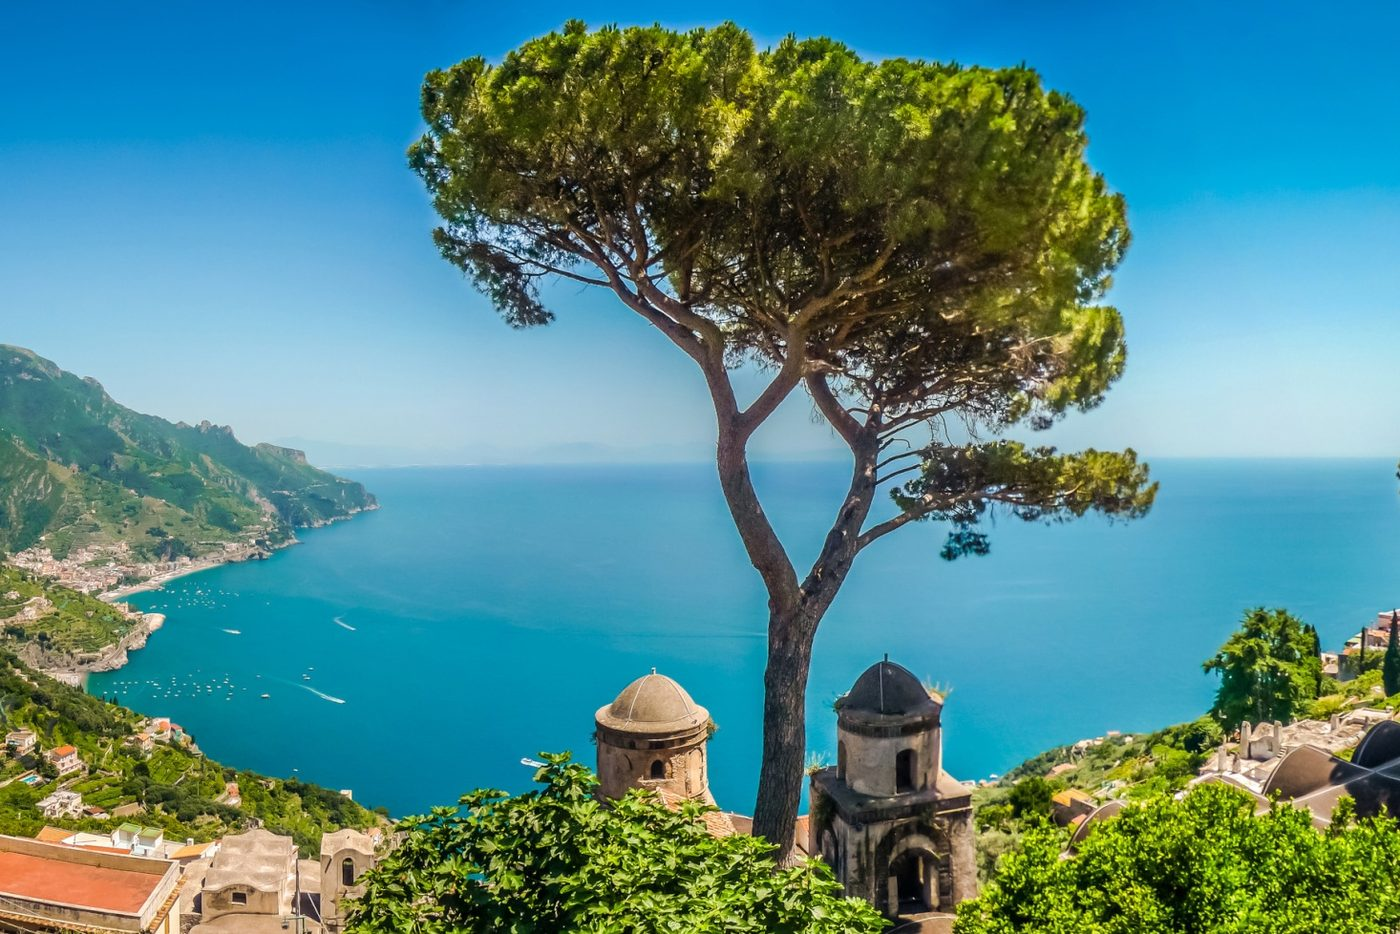 aerial shot of a secluded beach on the amalfi coast from the top of encompassing mountain